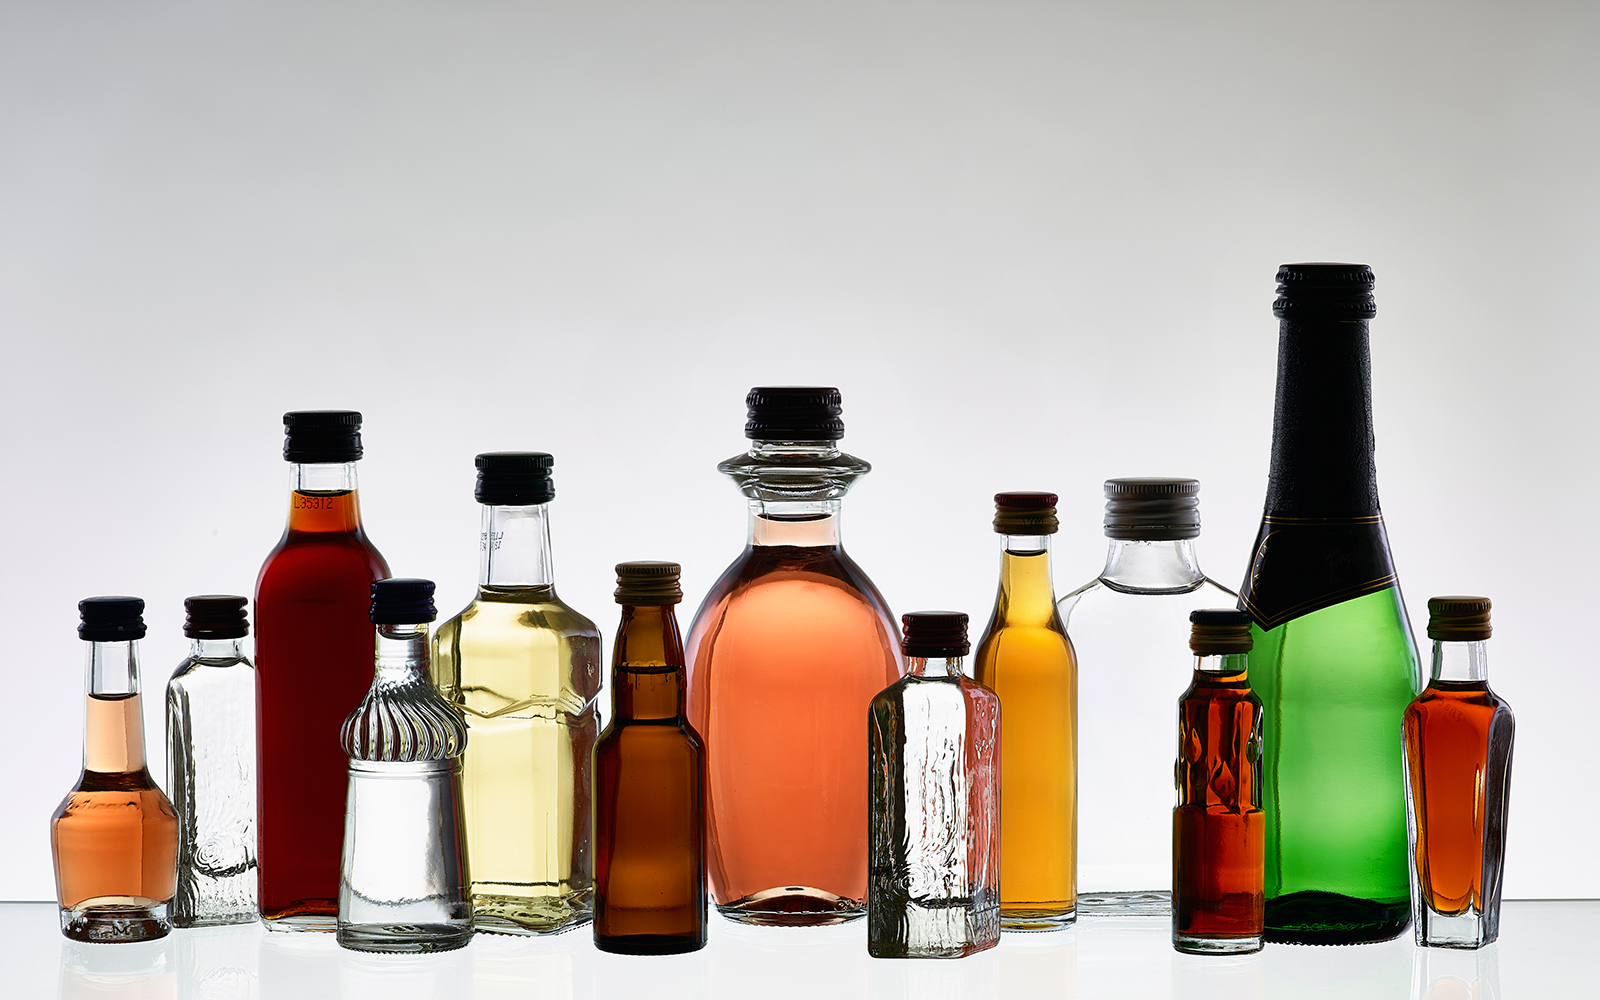 Small liquor bottles lined up